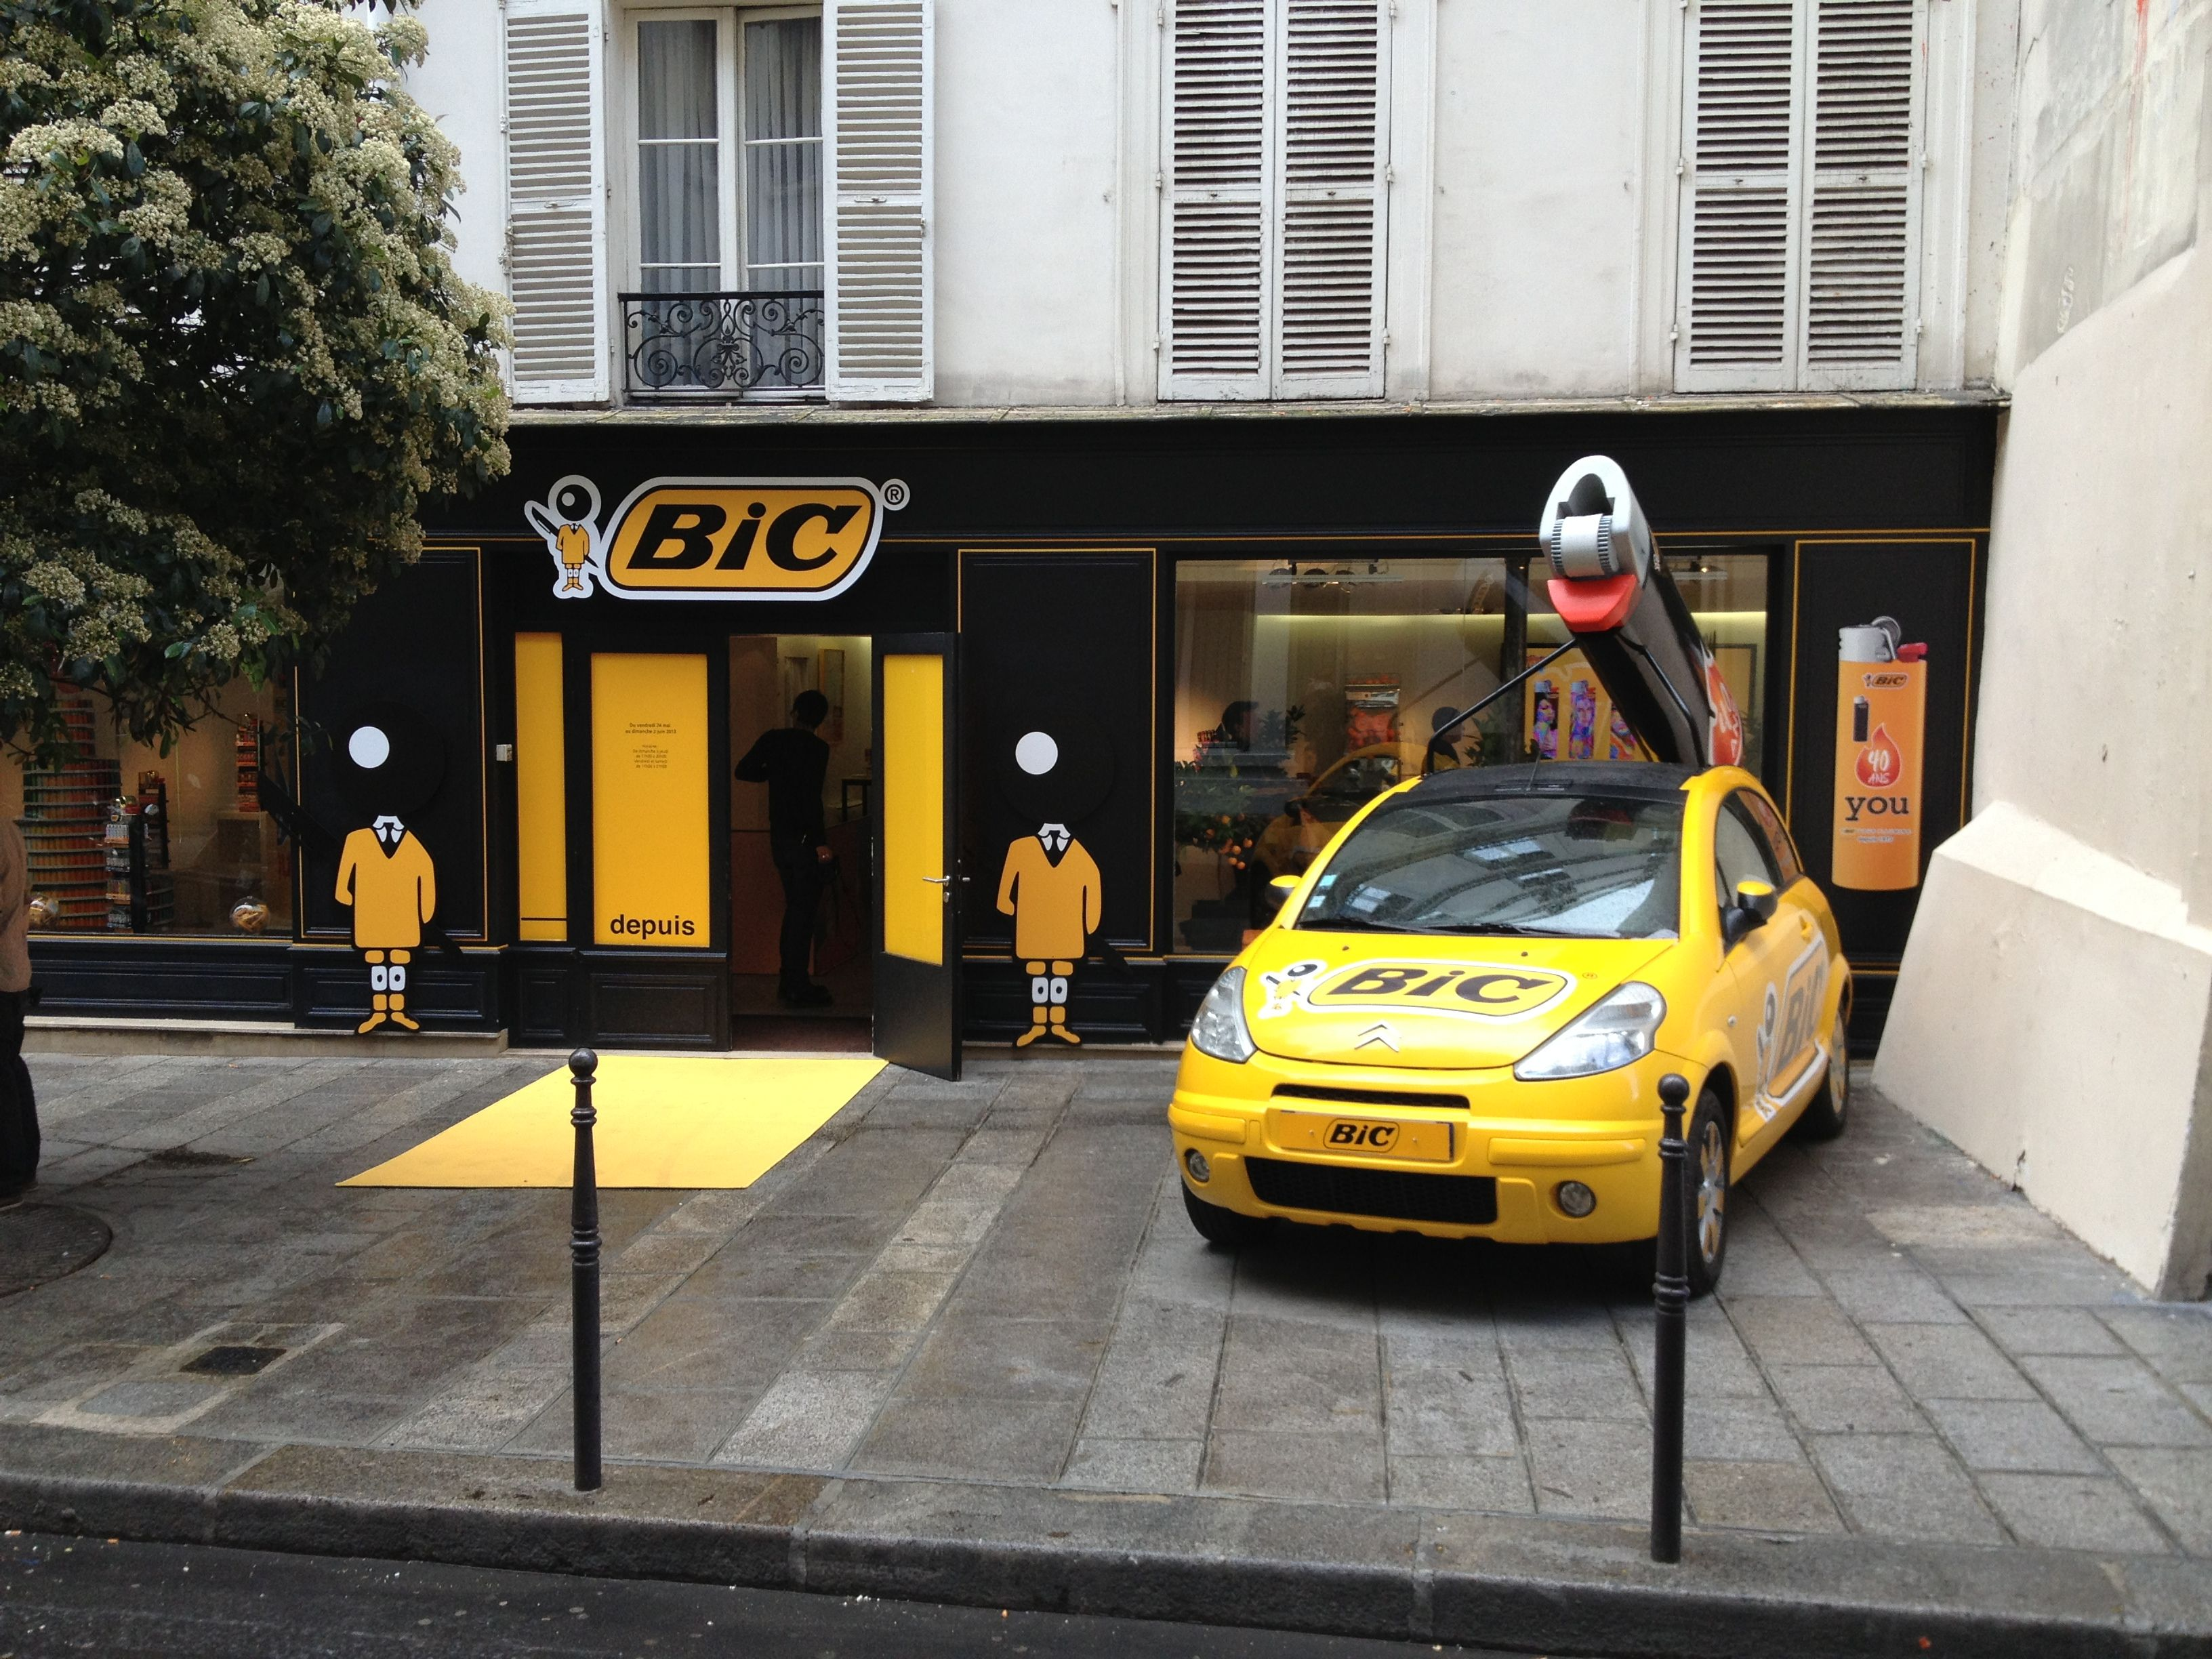 Popup-store-anniversaire-40-ans-Bic-Paris-street-marketing-15.jpg (3264×2448)